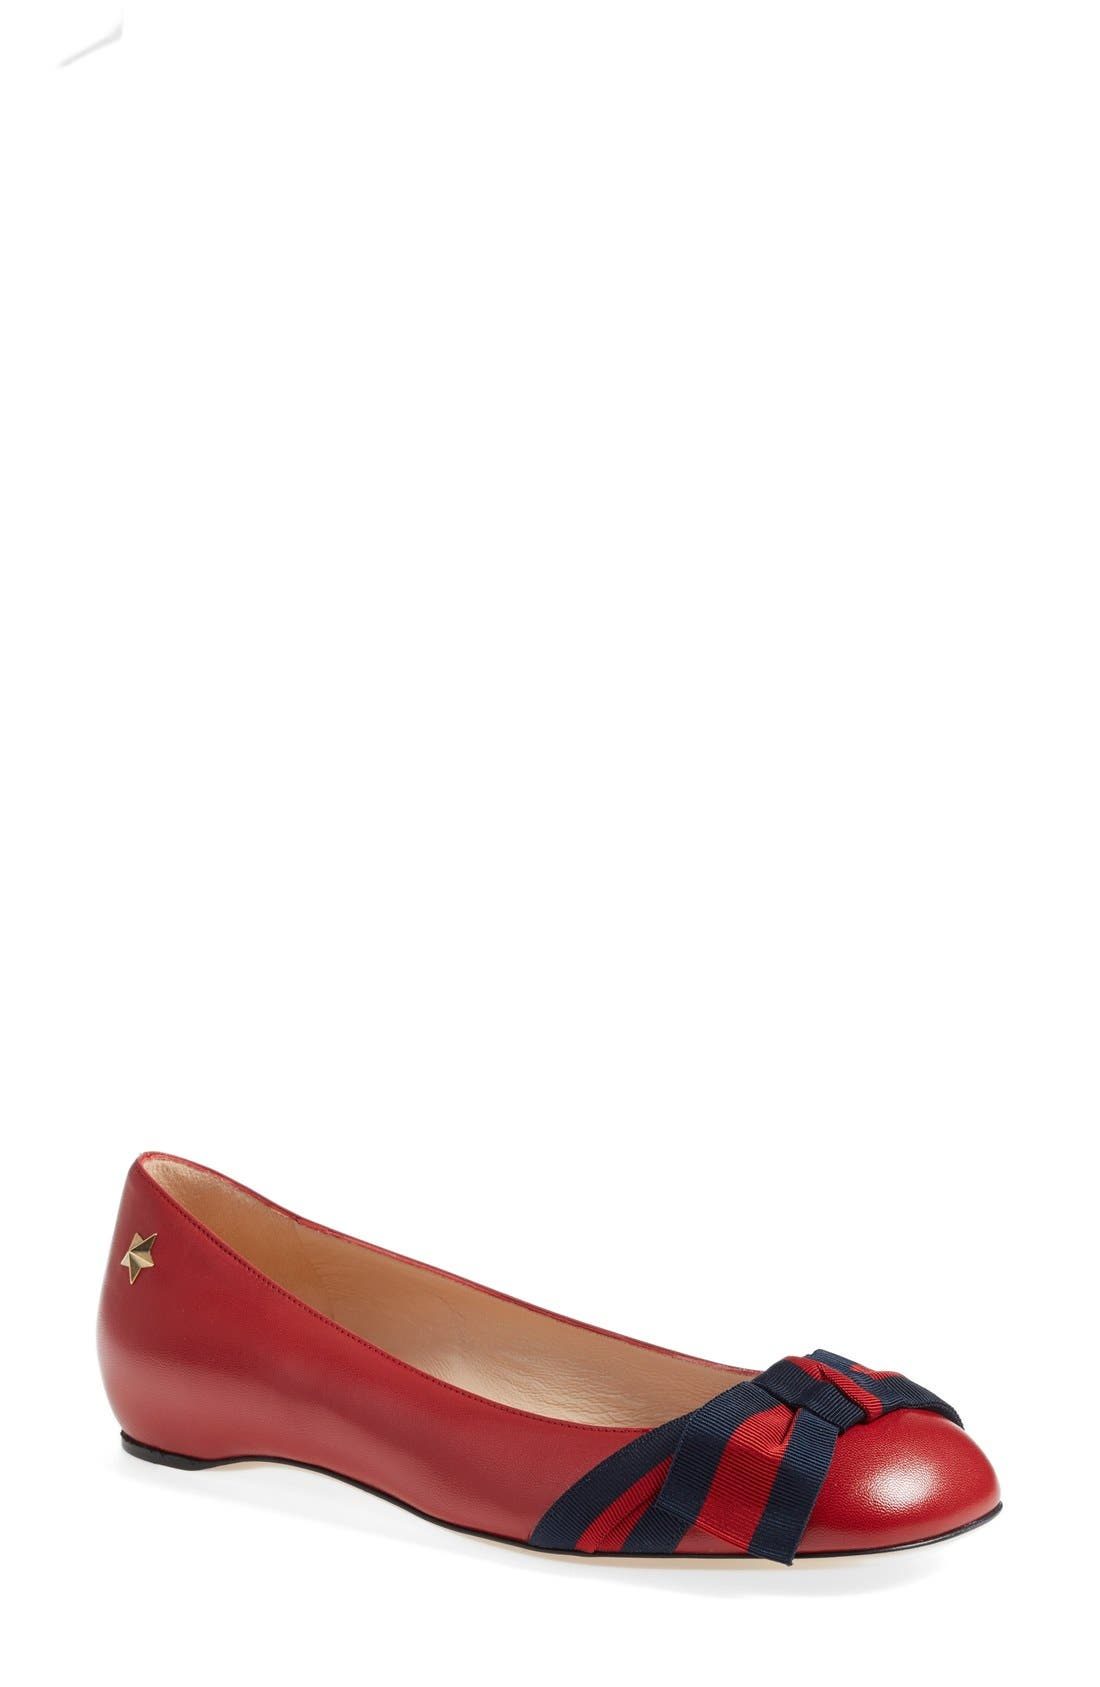 Alternate Image 1 Selected - Gucci 'Aline' Bow Ballet Flat (Women)